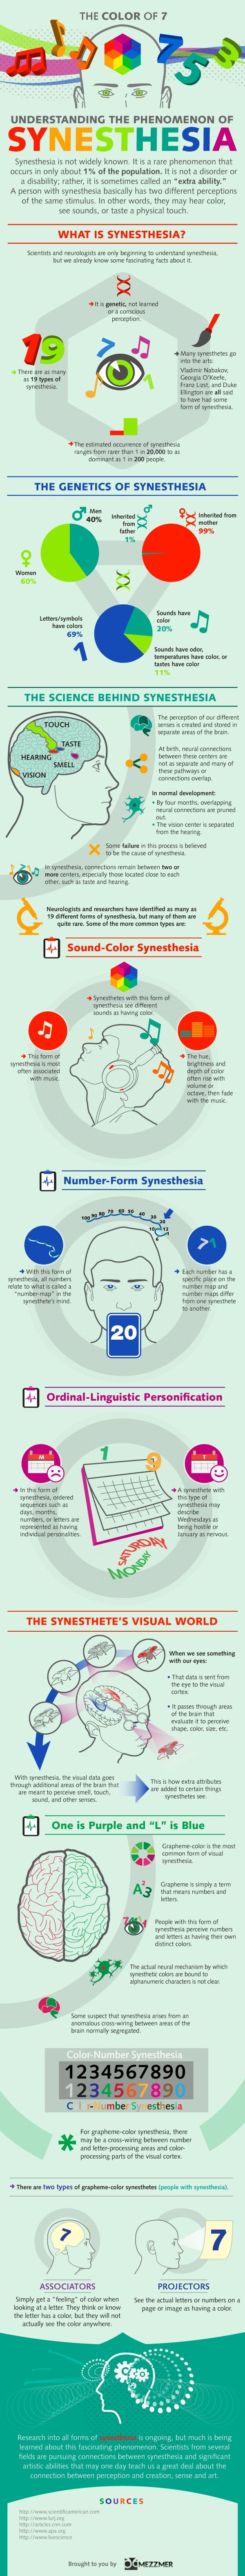 Understanding the phenomenon of synesthesia infographic data